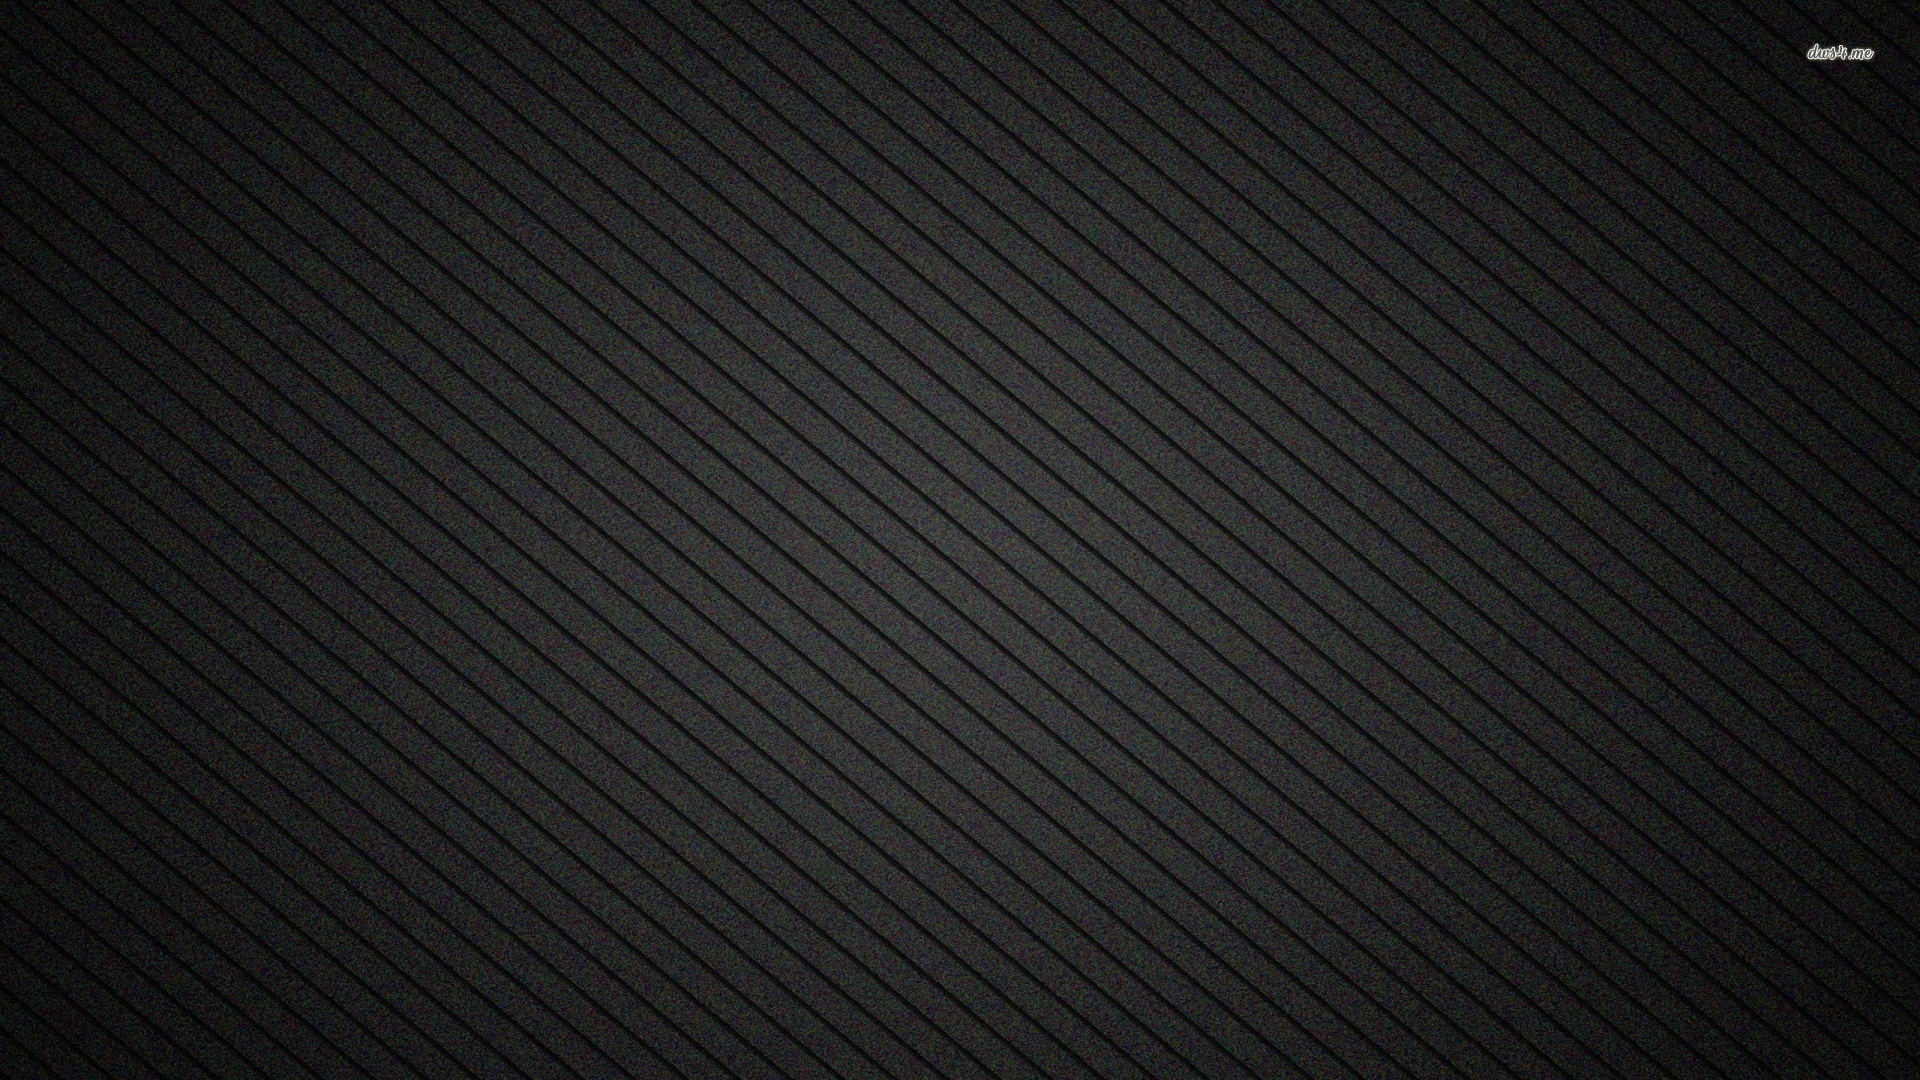 Grey Background Wallpaper Wallpapersafari HD Wallpapers Download Free Images Wallpaper [1000image.com]